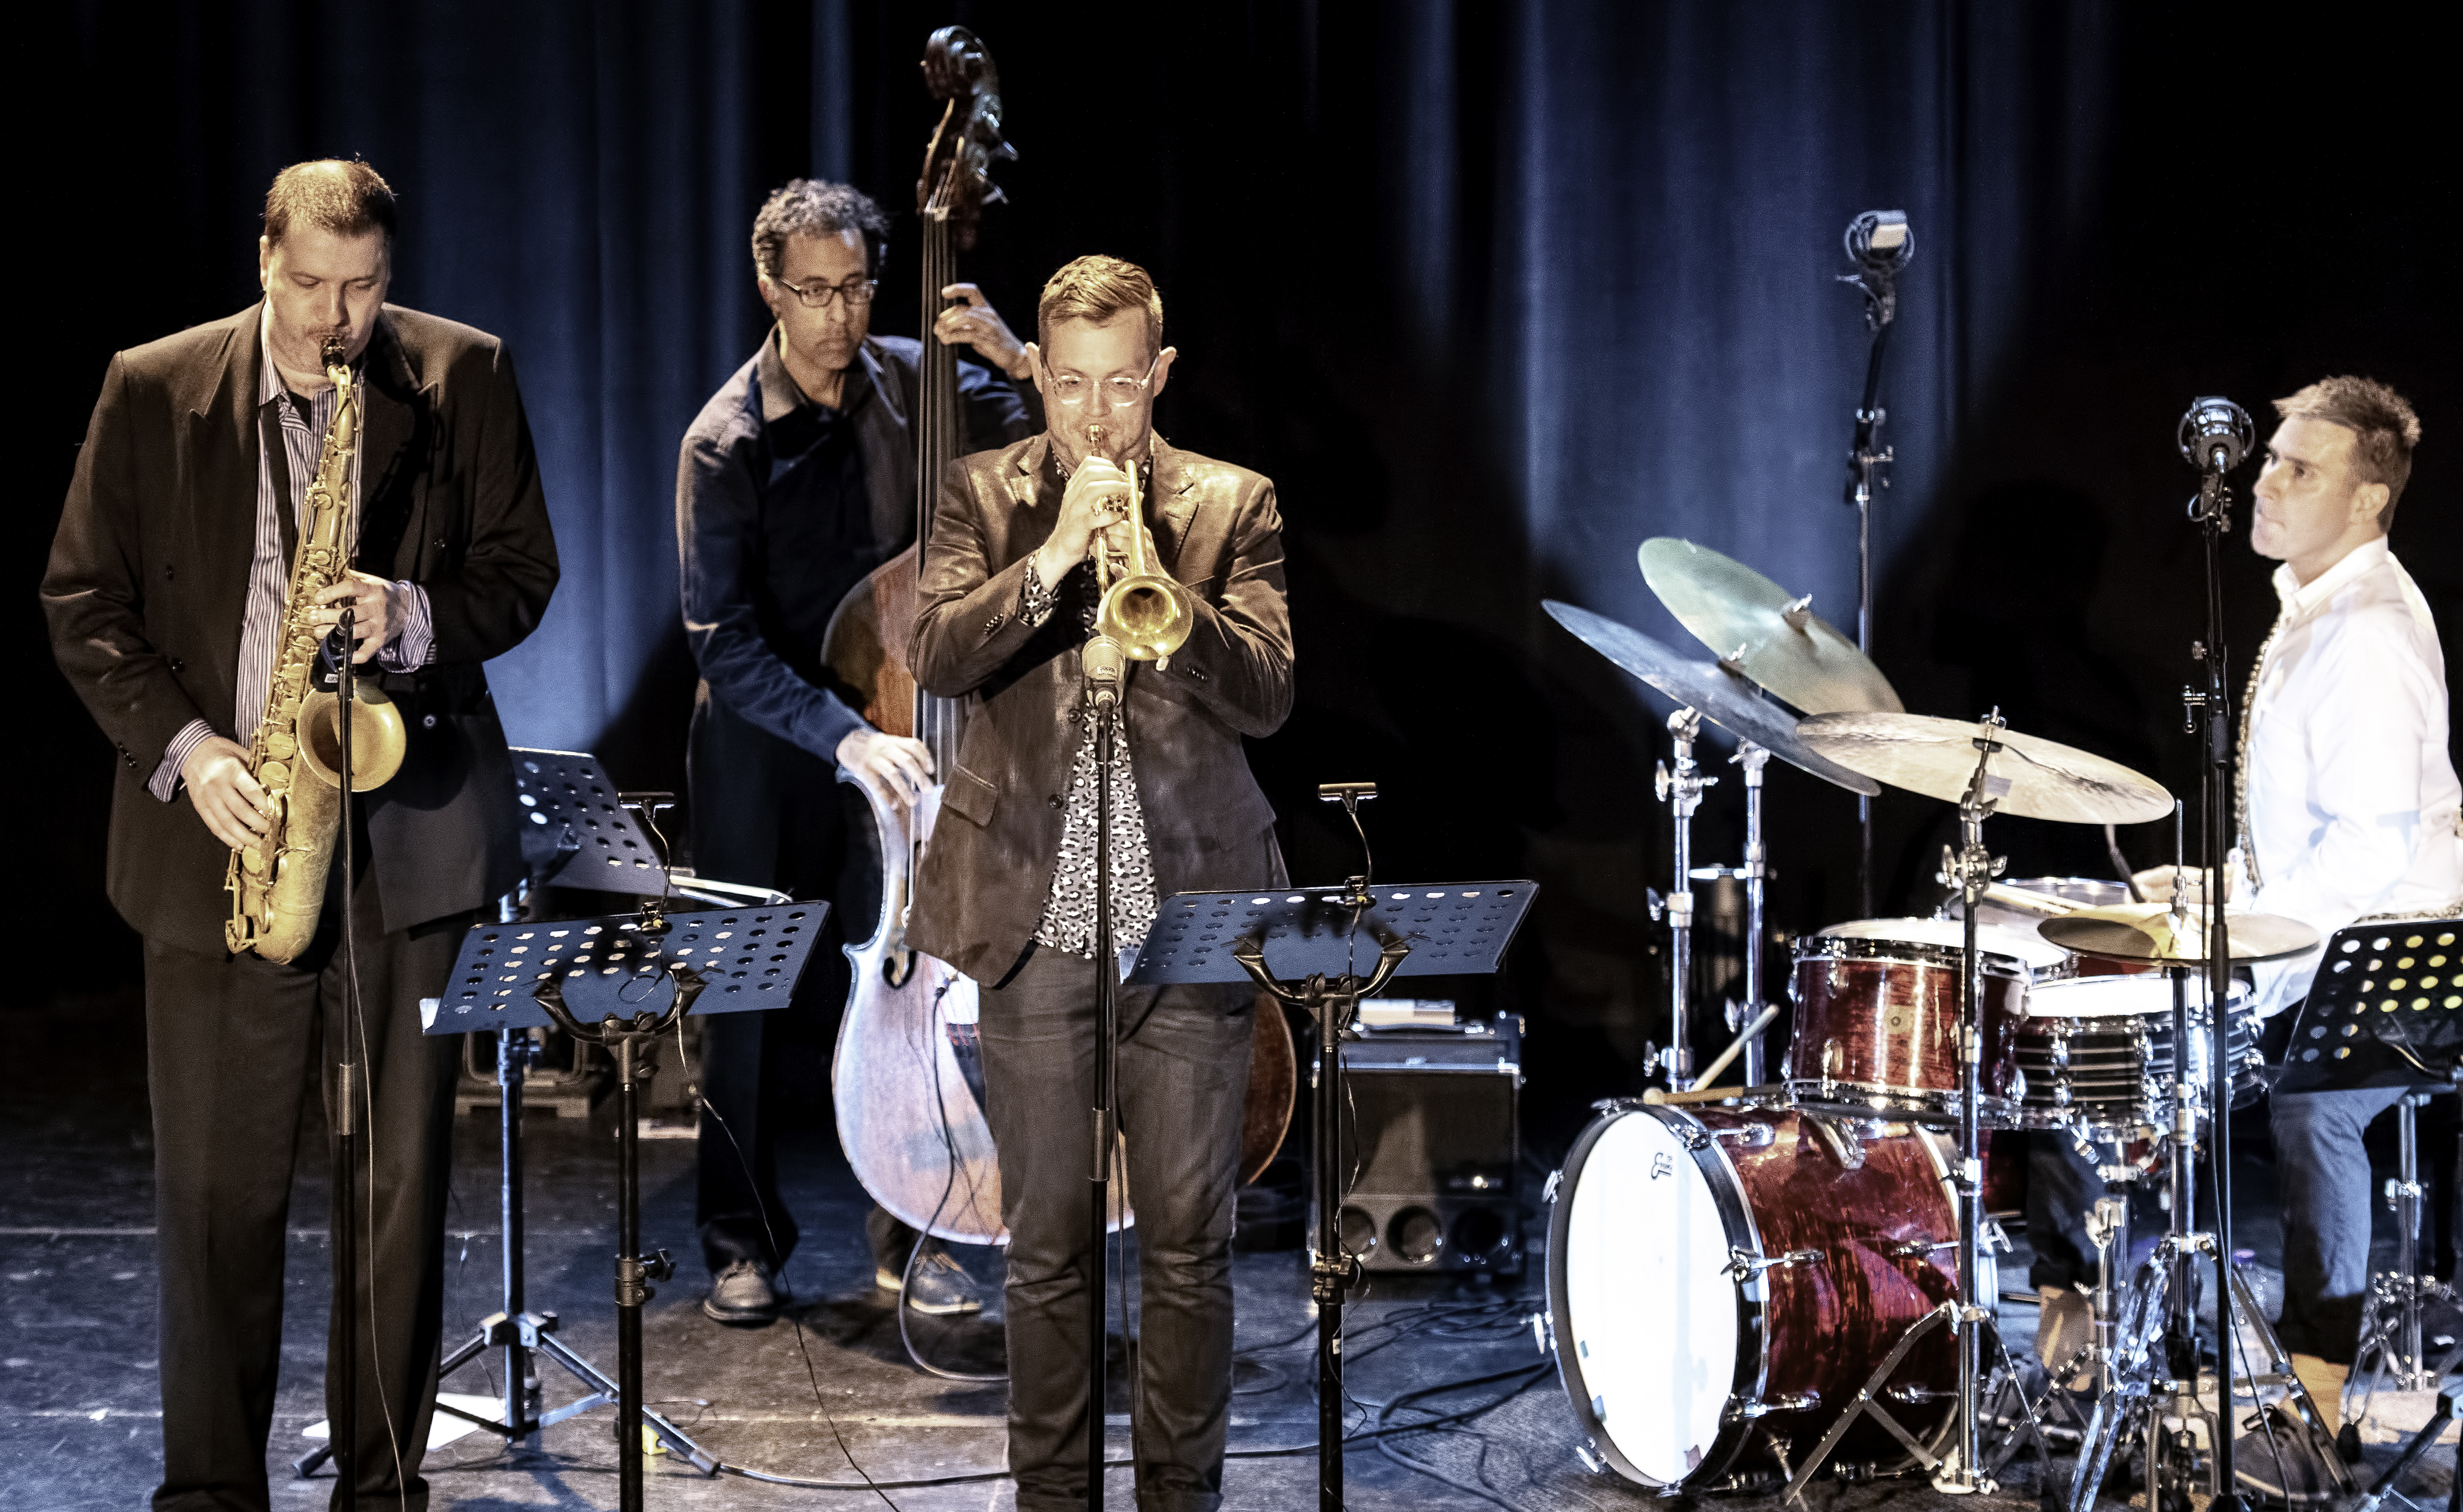 Al McLean, Adrian Vedady, Lex French and Jim Doxas At The Montreal International Jazz Festival 2019